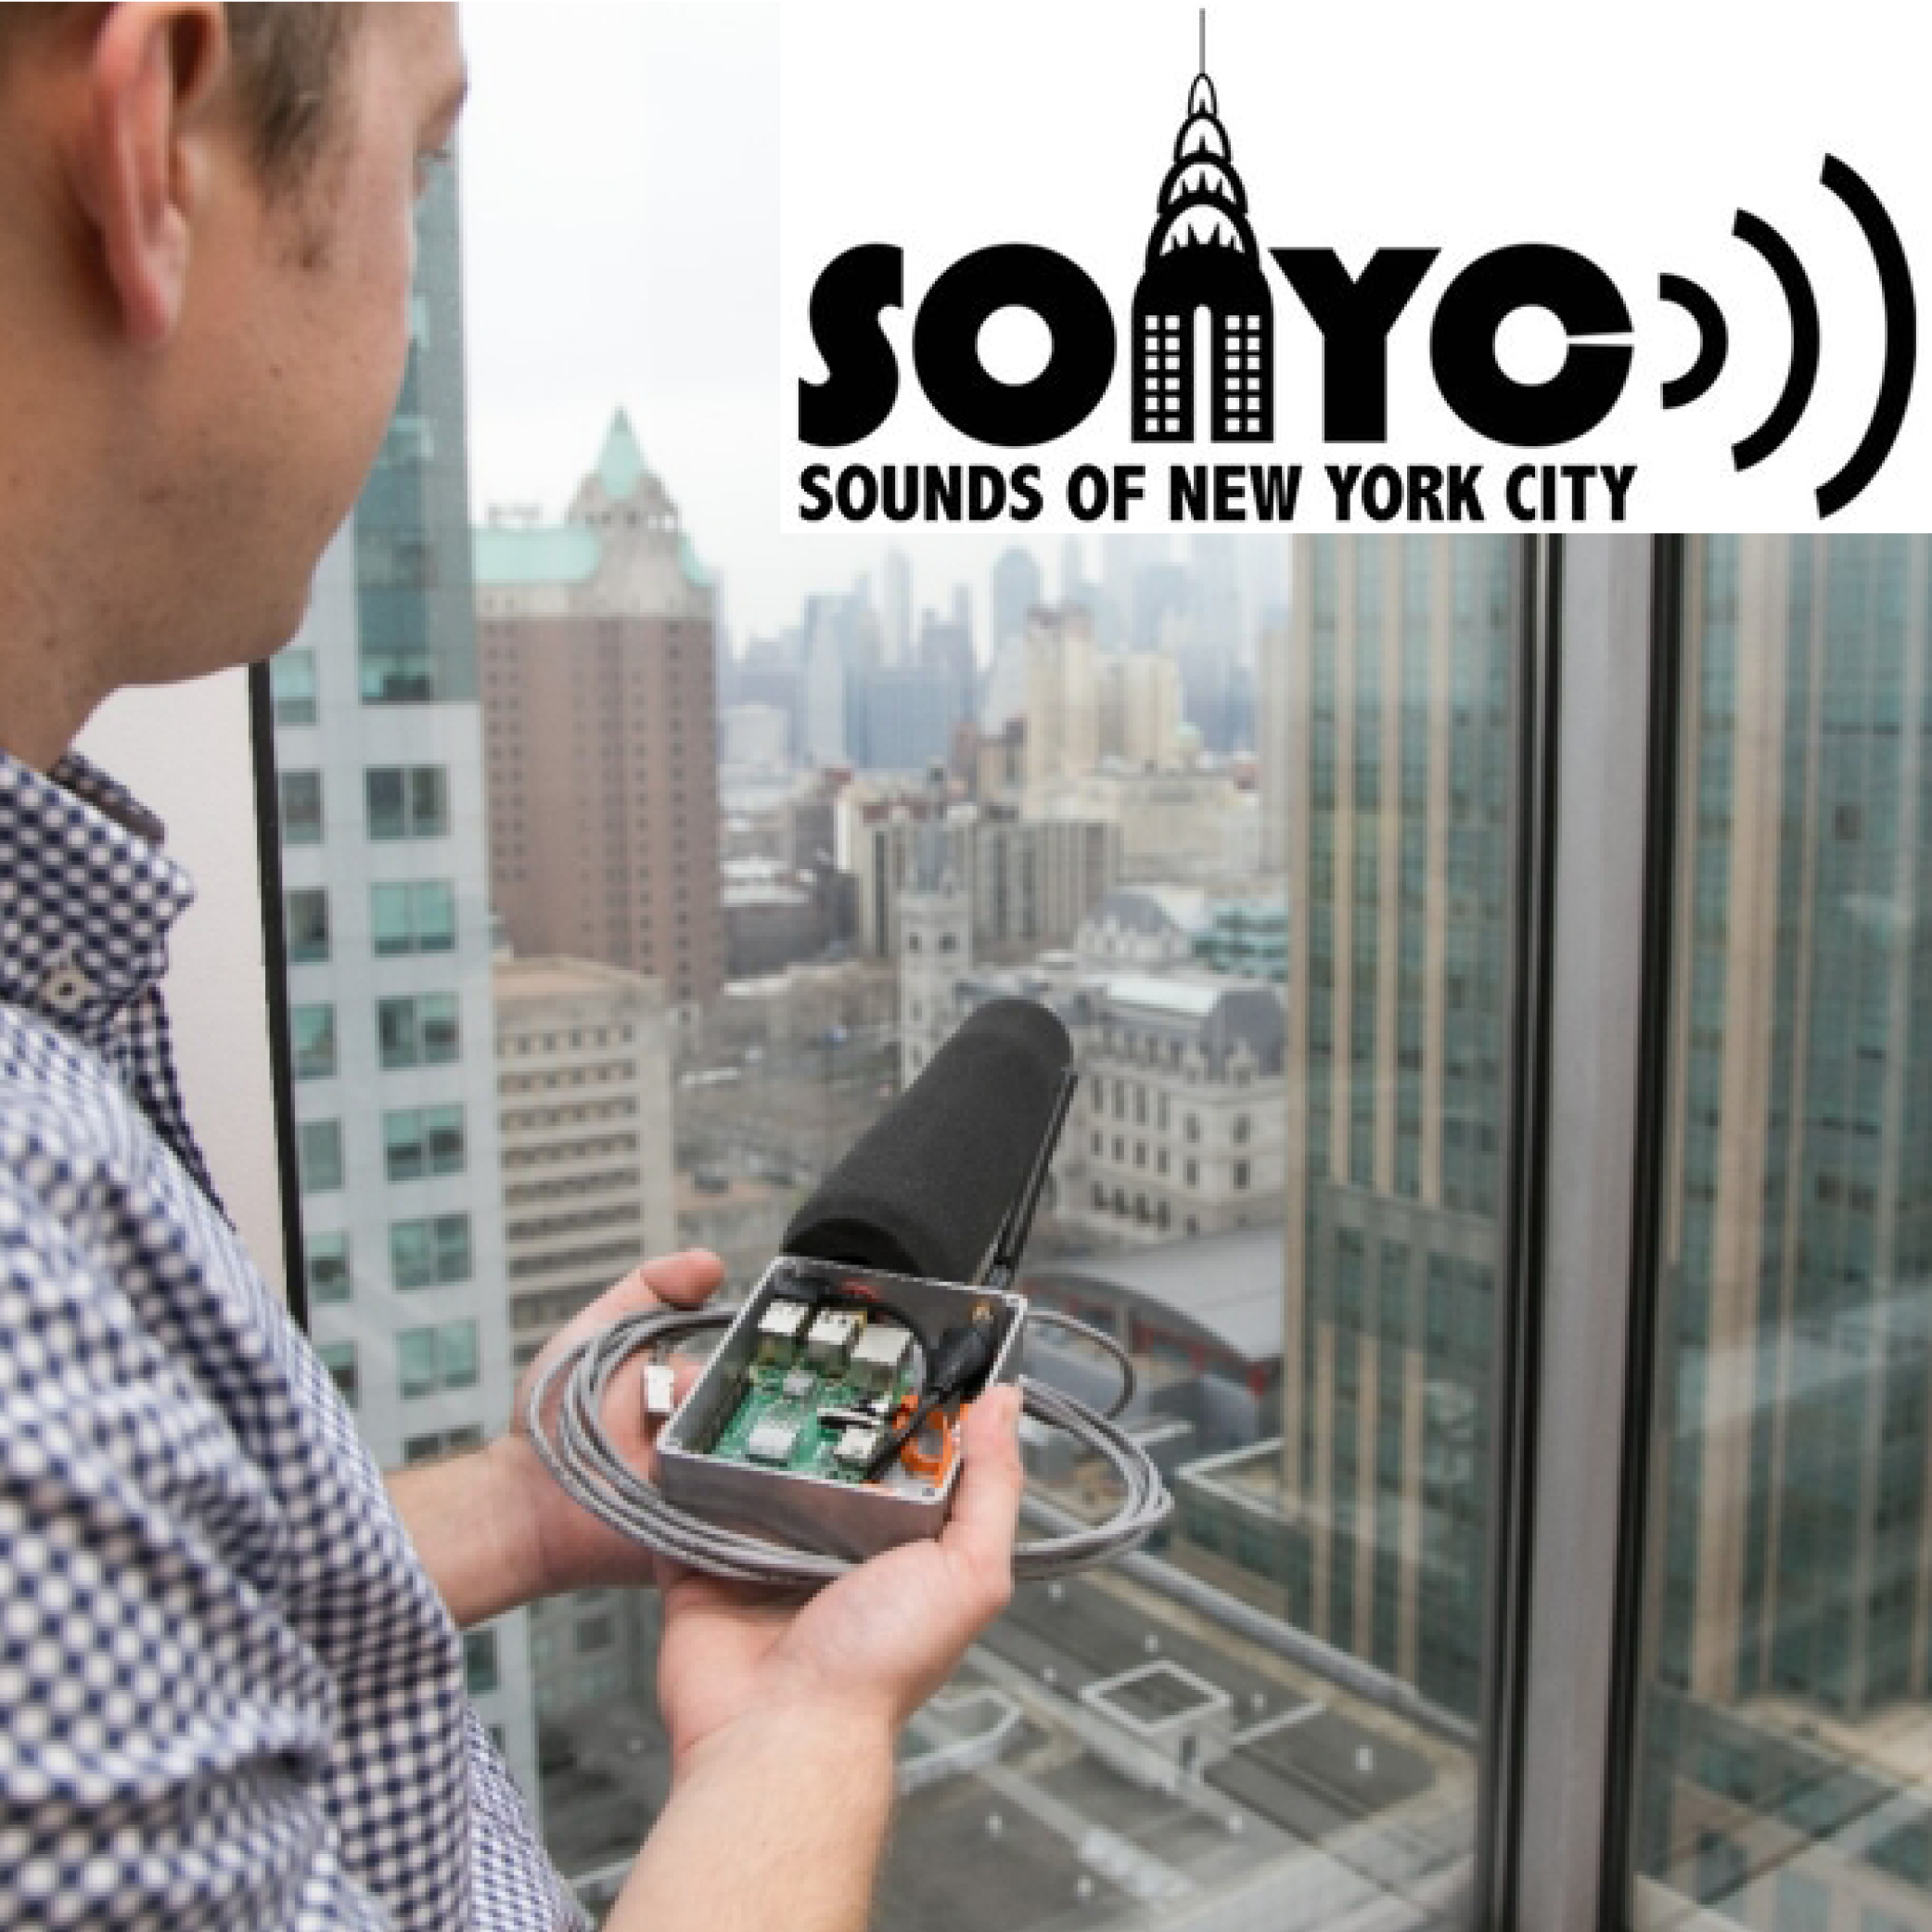 Sounds of New York City (SONYC)